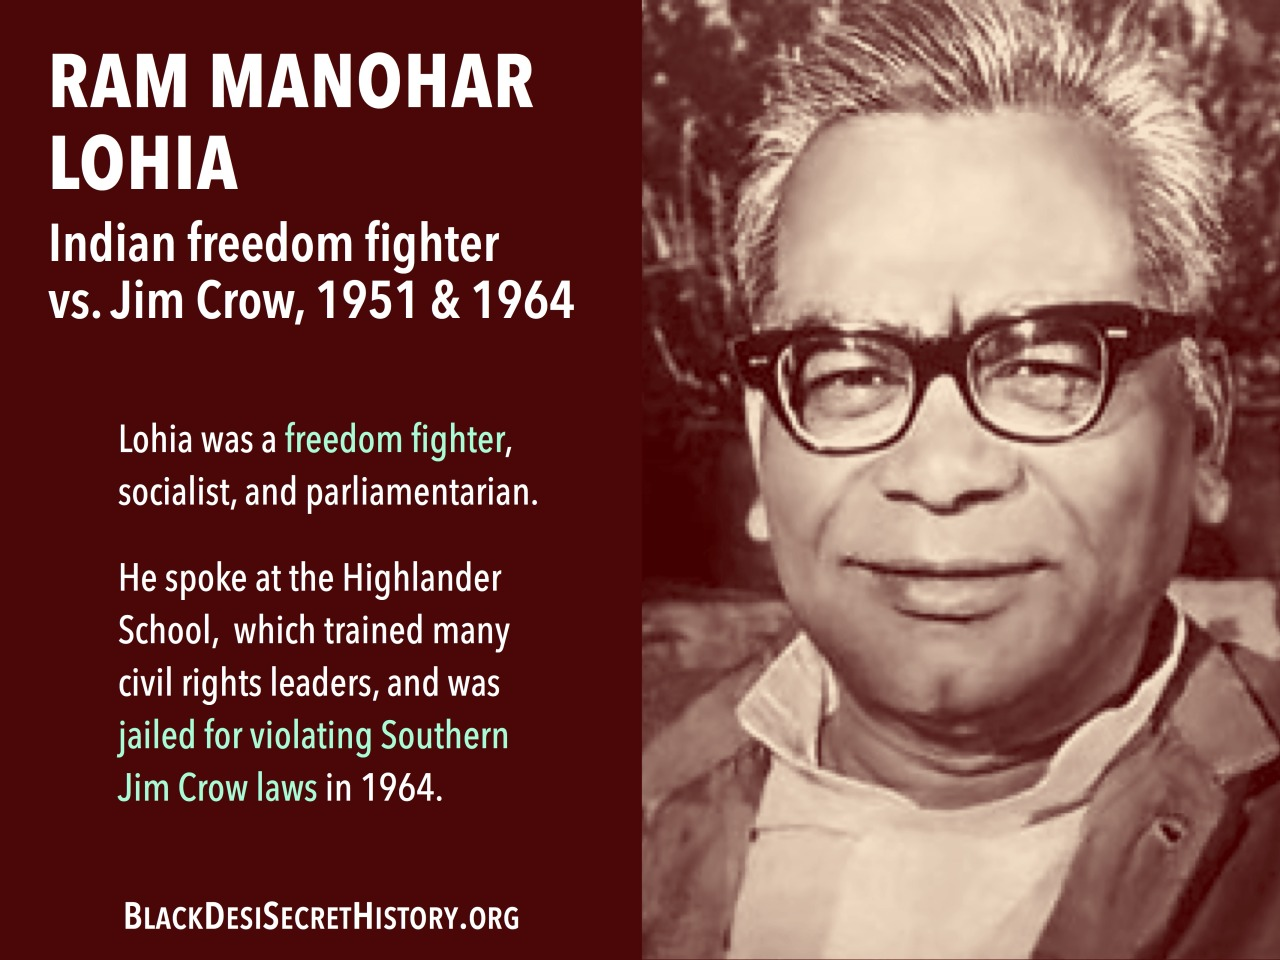 RAM MANOHAR LOHIA,